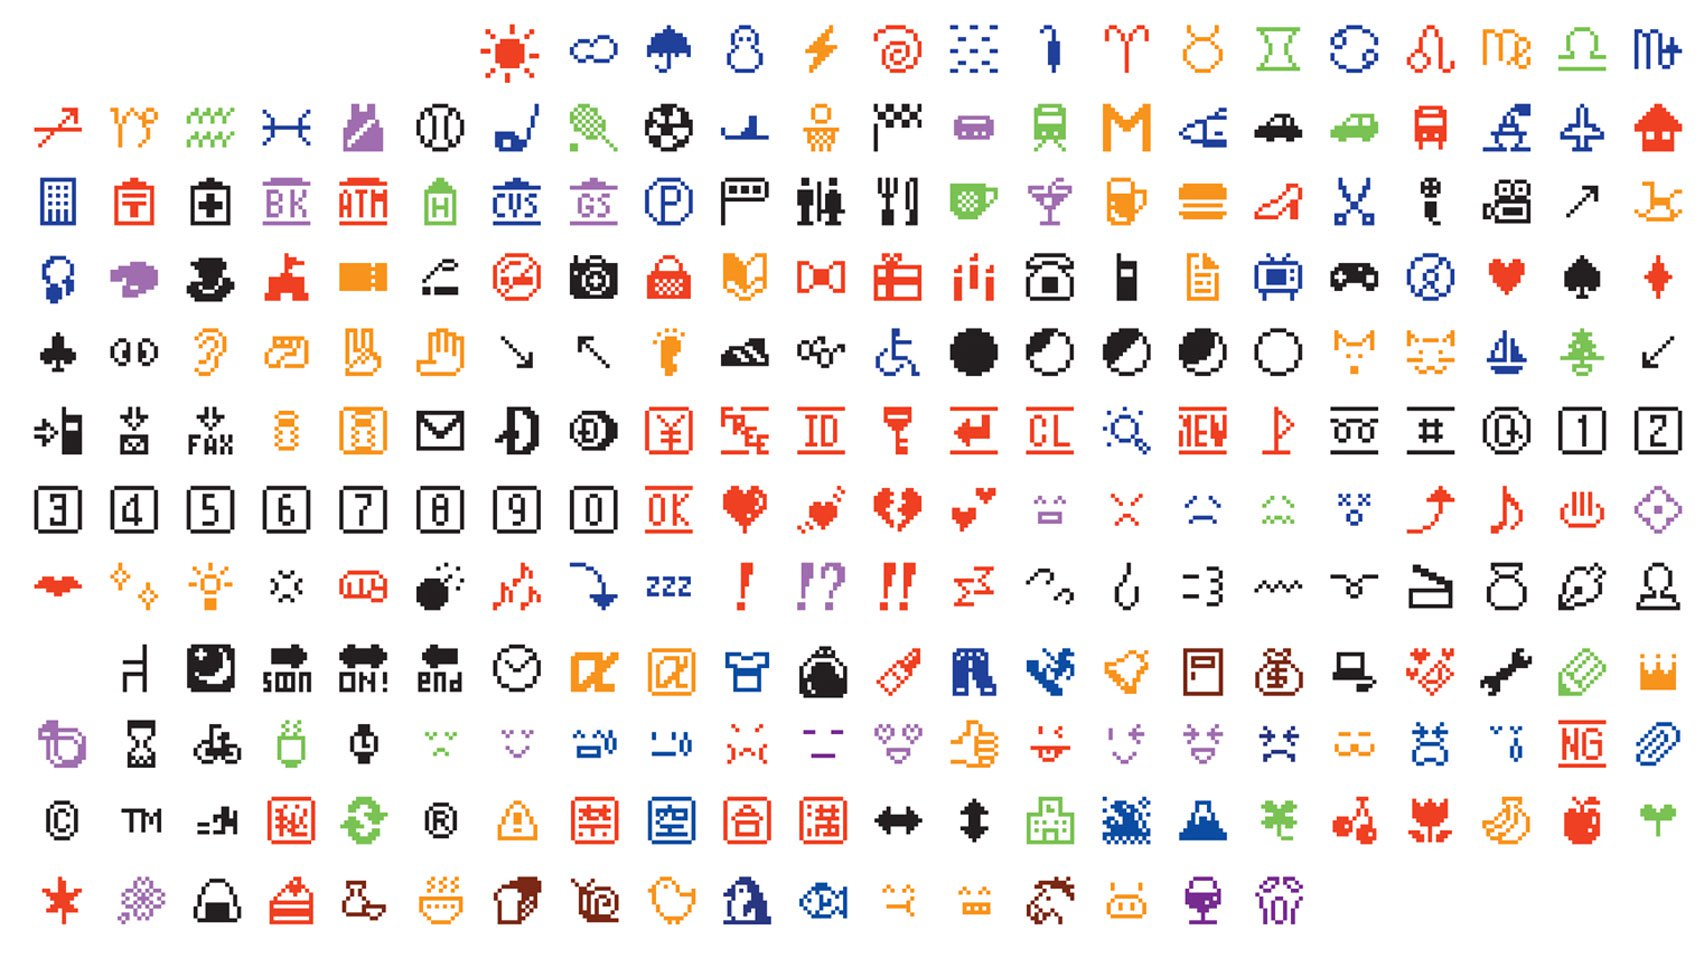 Museum of Modern Art acquires an emoji collection